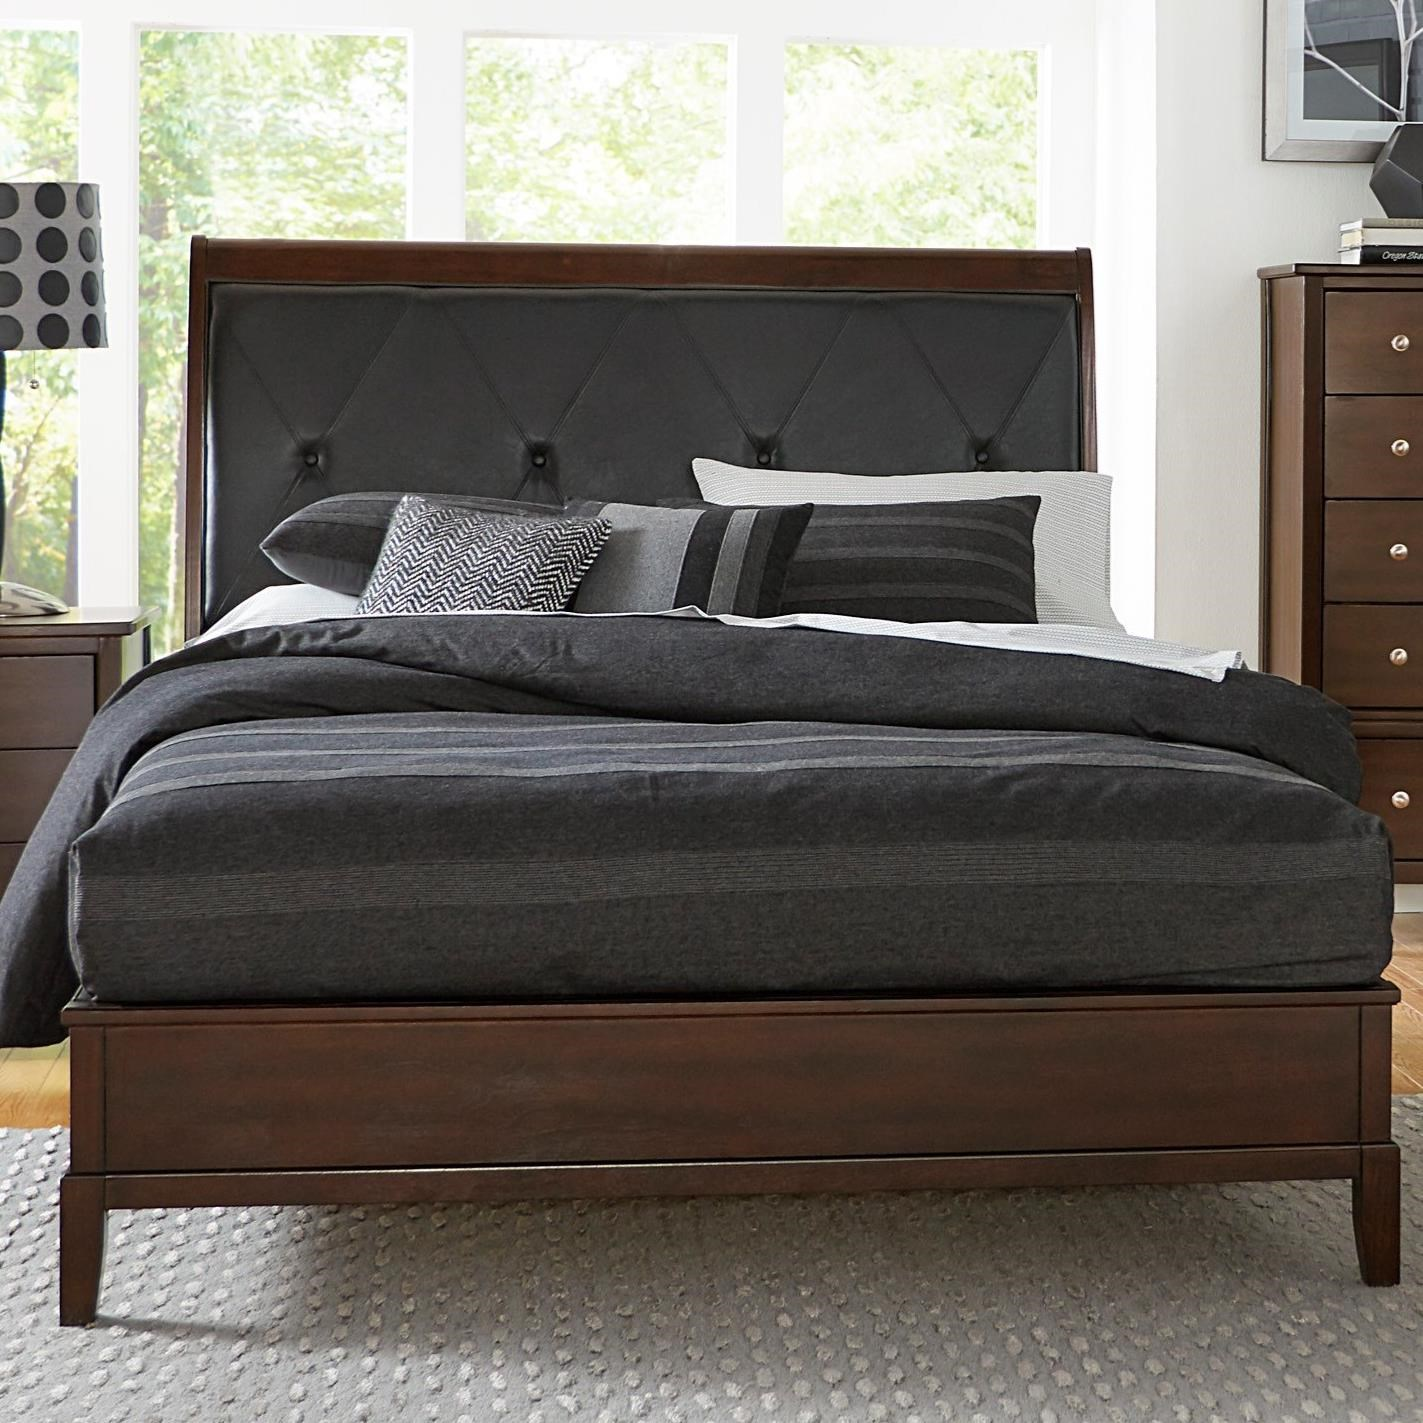 Cotterill Queen Upholstered Bed by Homelegance at Carolina Direct